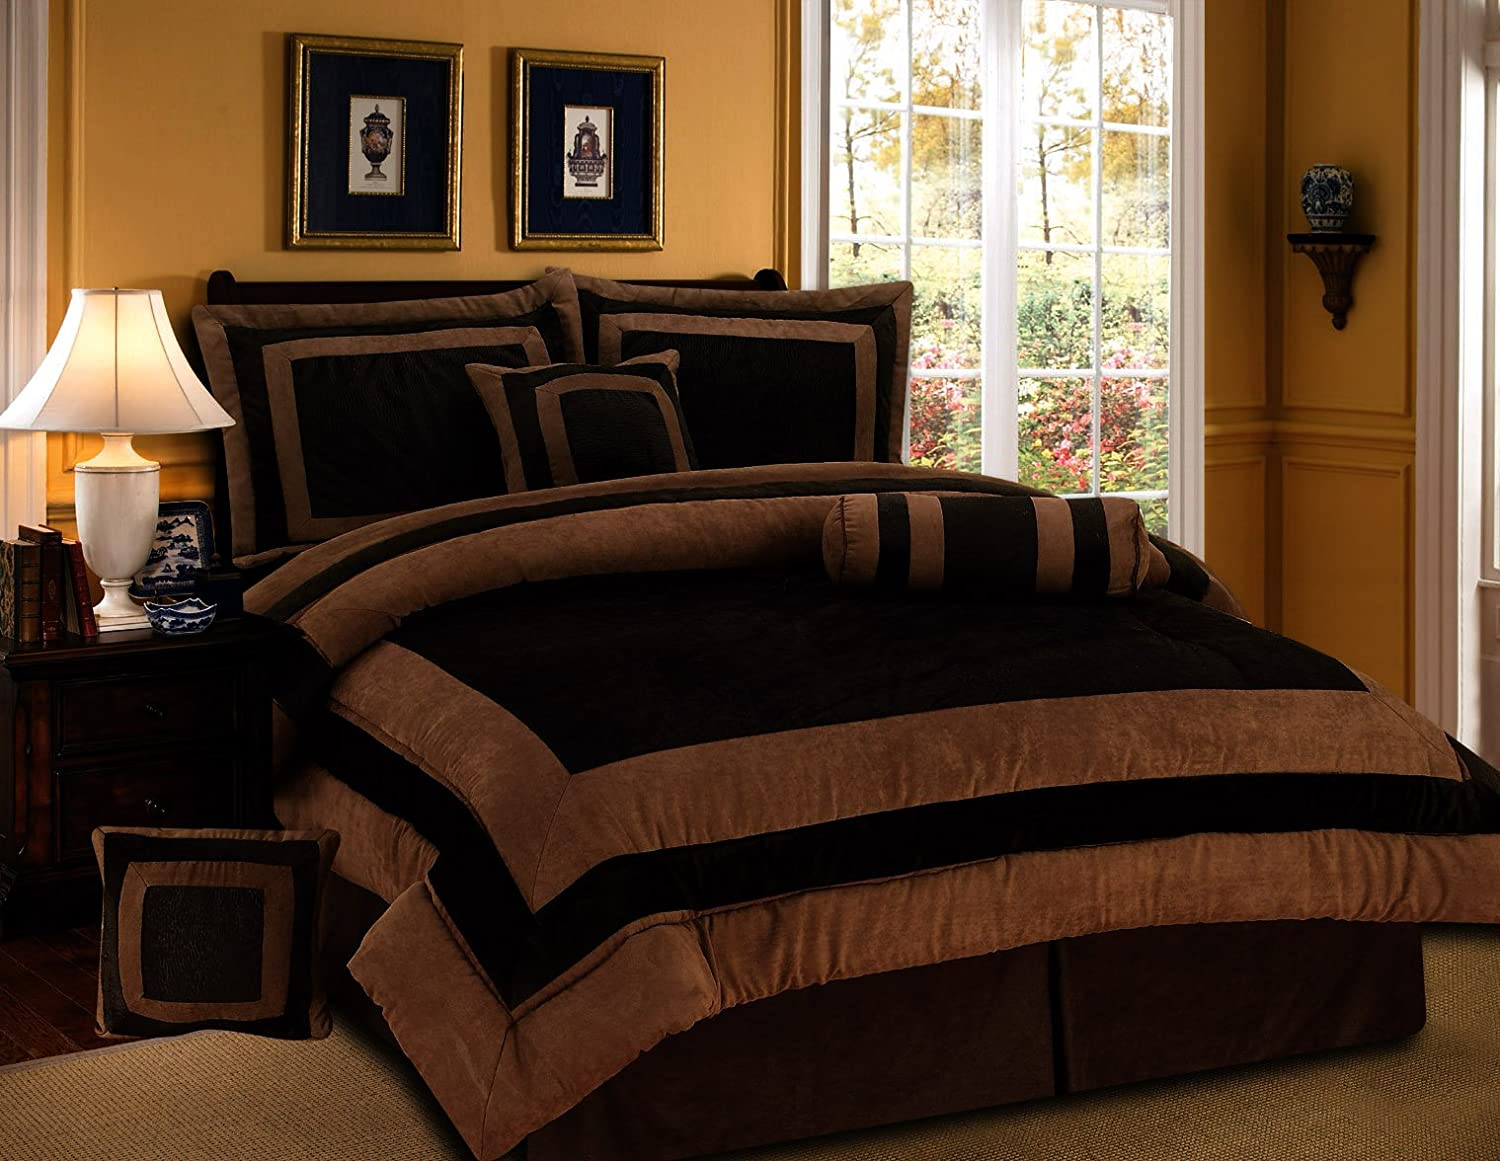 Amazoncom Pieces Chocolate Brown Suede Comforter Set - California king bedding sets comforters